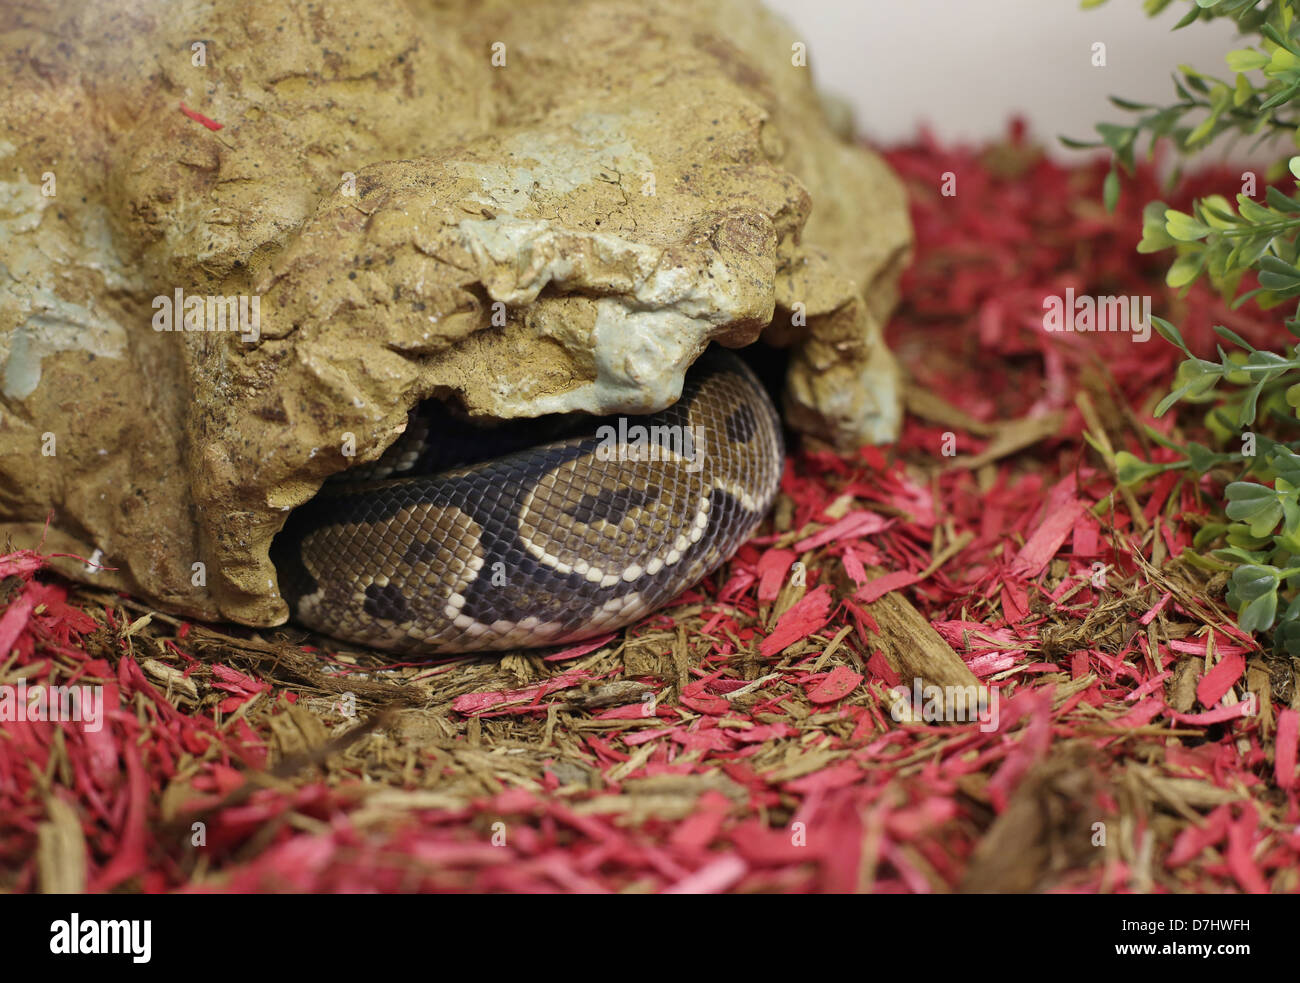 A captive snake in a rock hide. - Stock Image